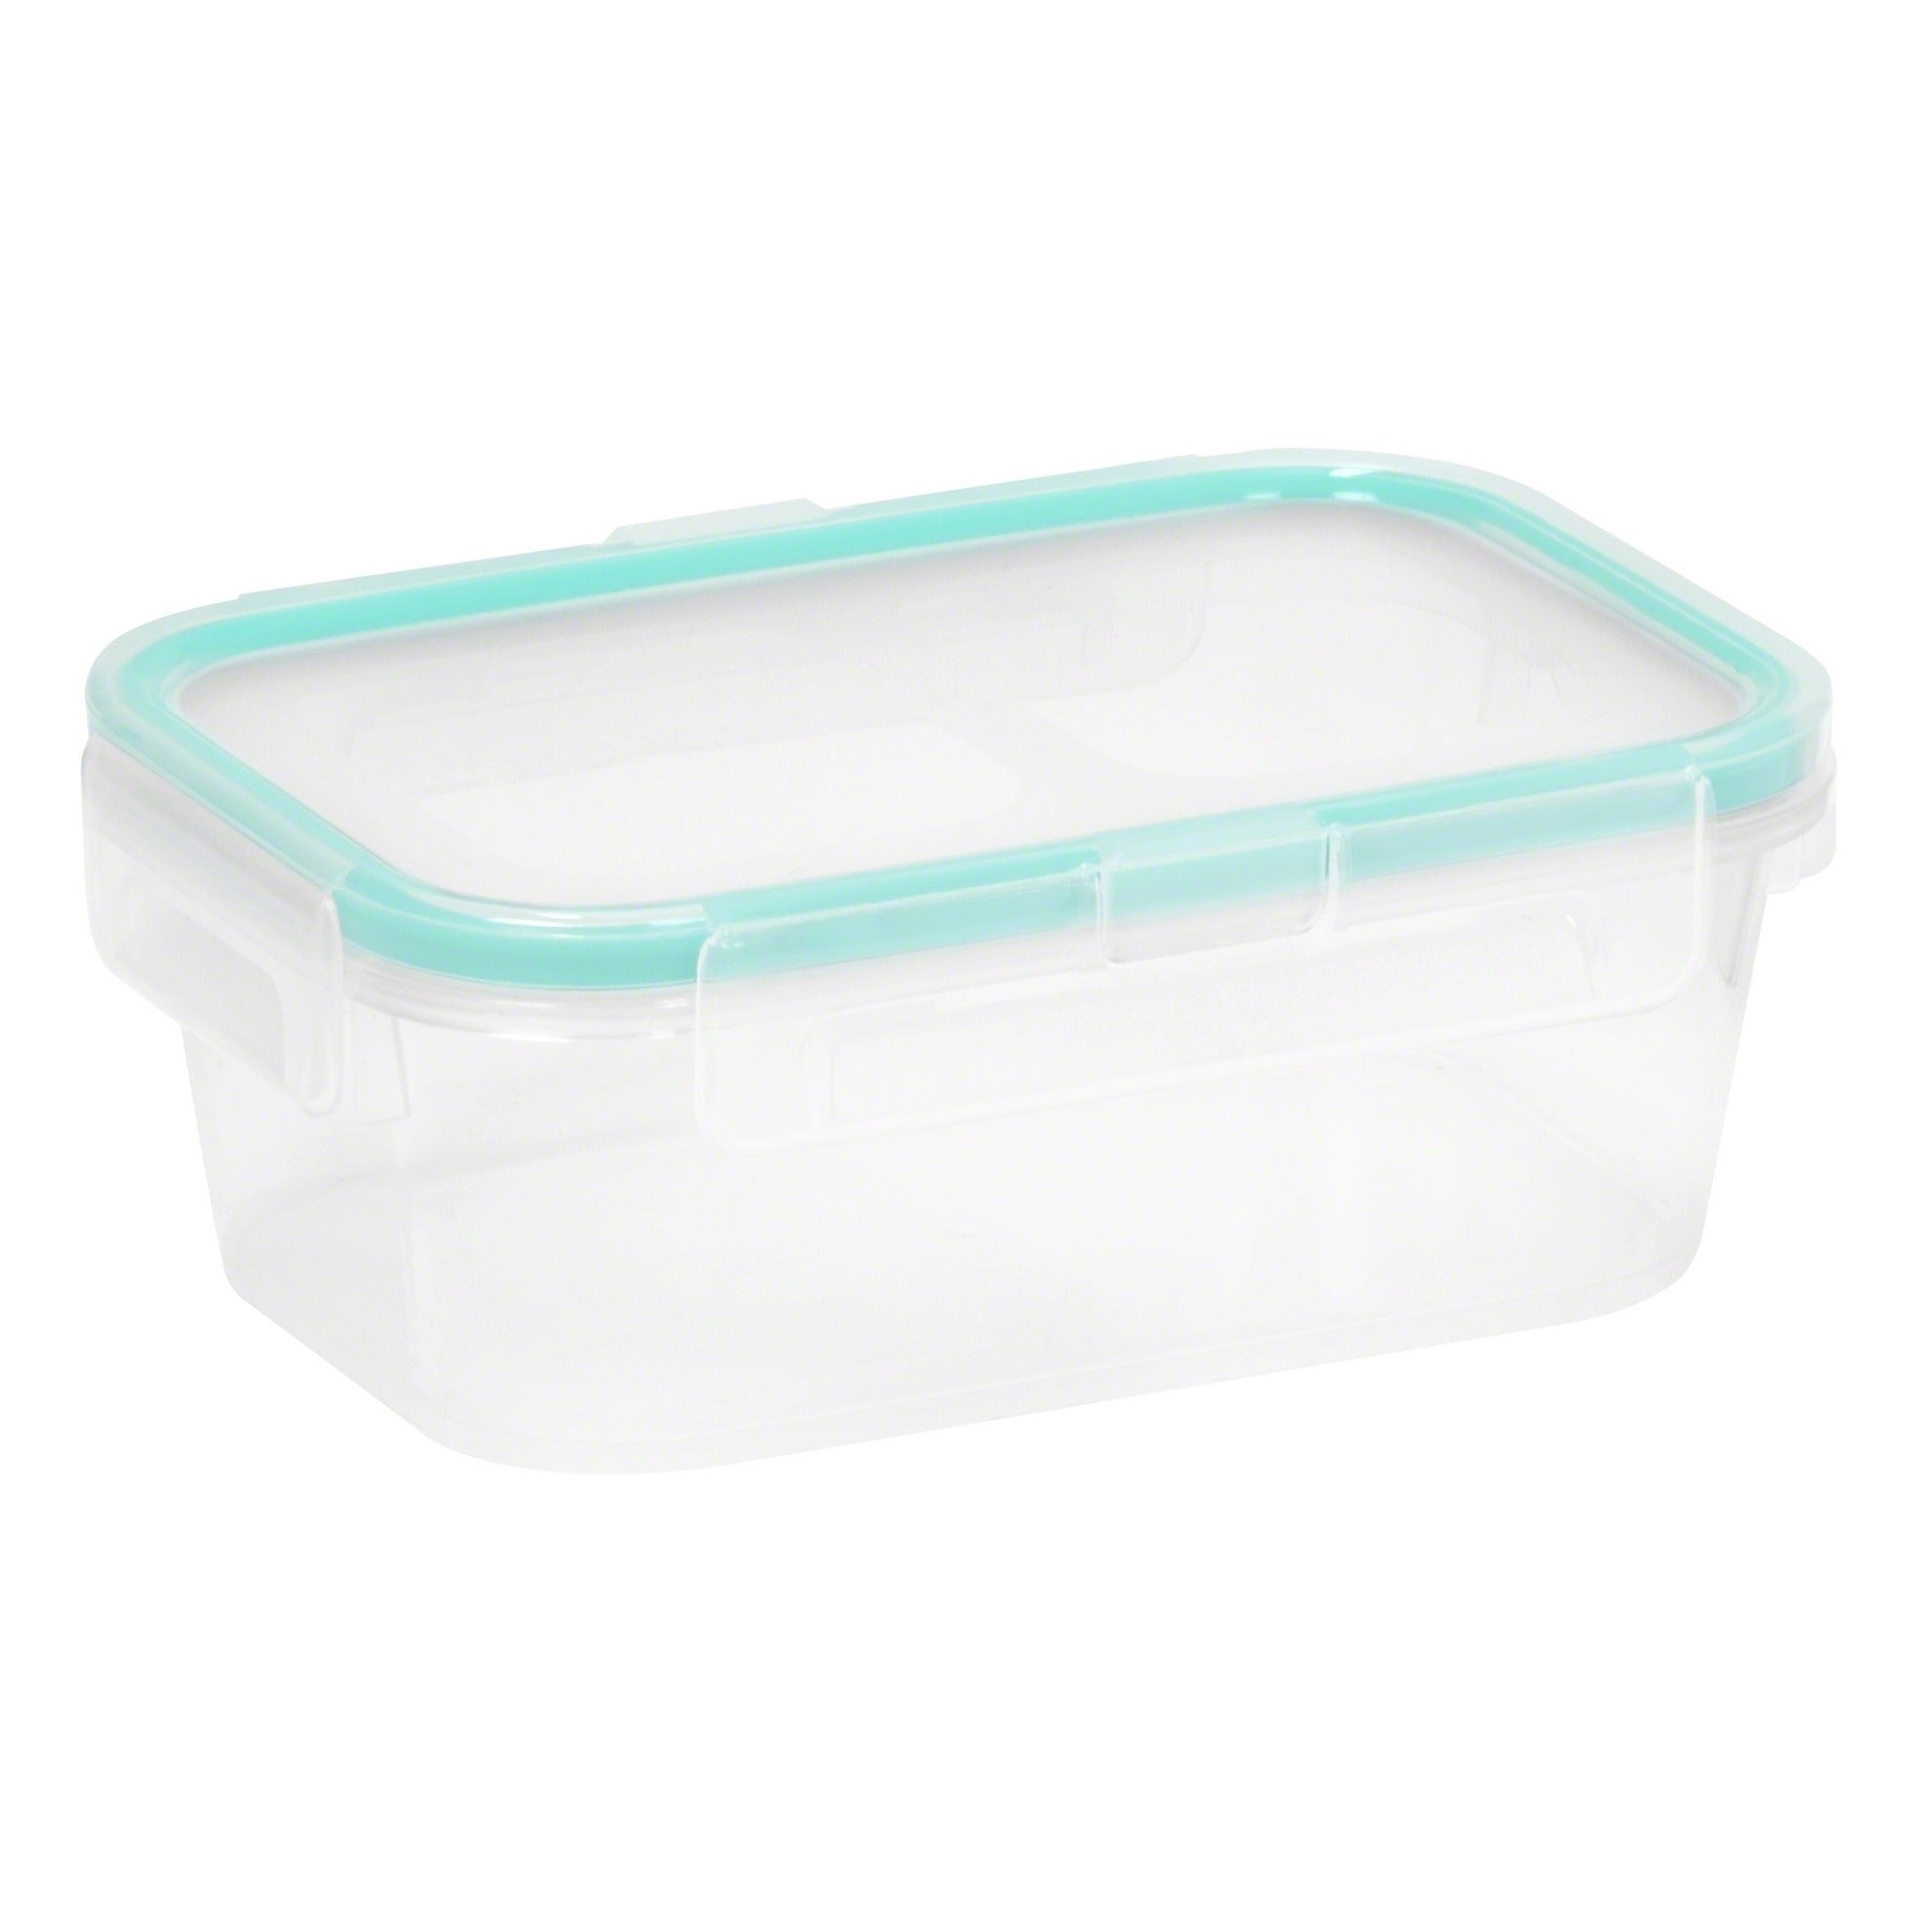 Snapware 1098428 2 Cup Small Rectangle Storage Container - Free Shipping On Orders Over $45 - Overstock - 19358088  sc 1 st  Overstock.com & Snapware 1098428 2 Cup Small Rectangle Storage Container - Free ...